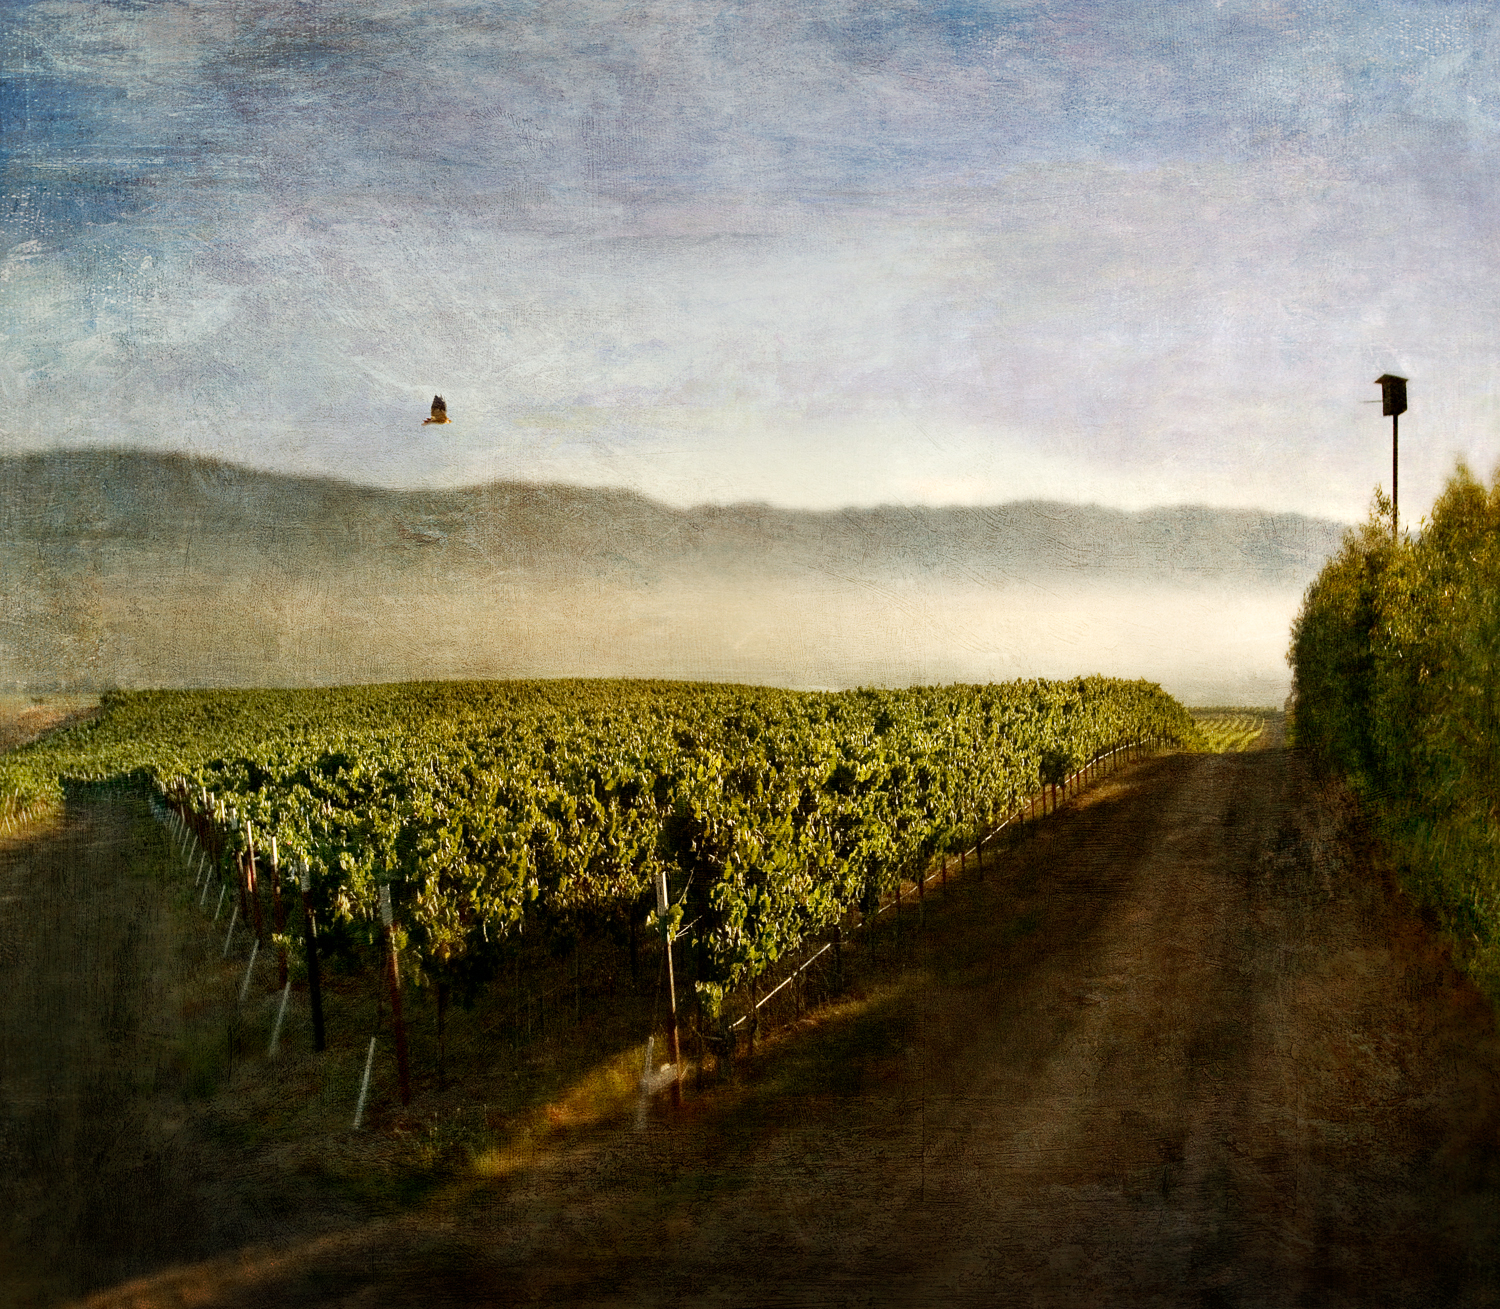 mountain_vineyard11v2F.jpg